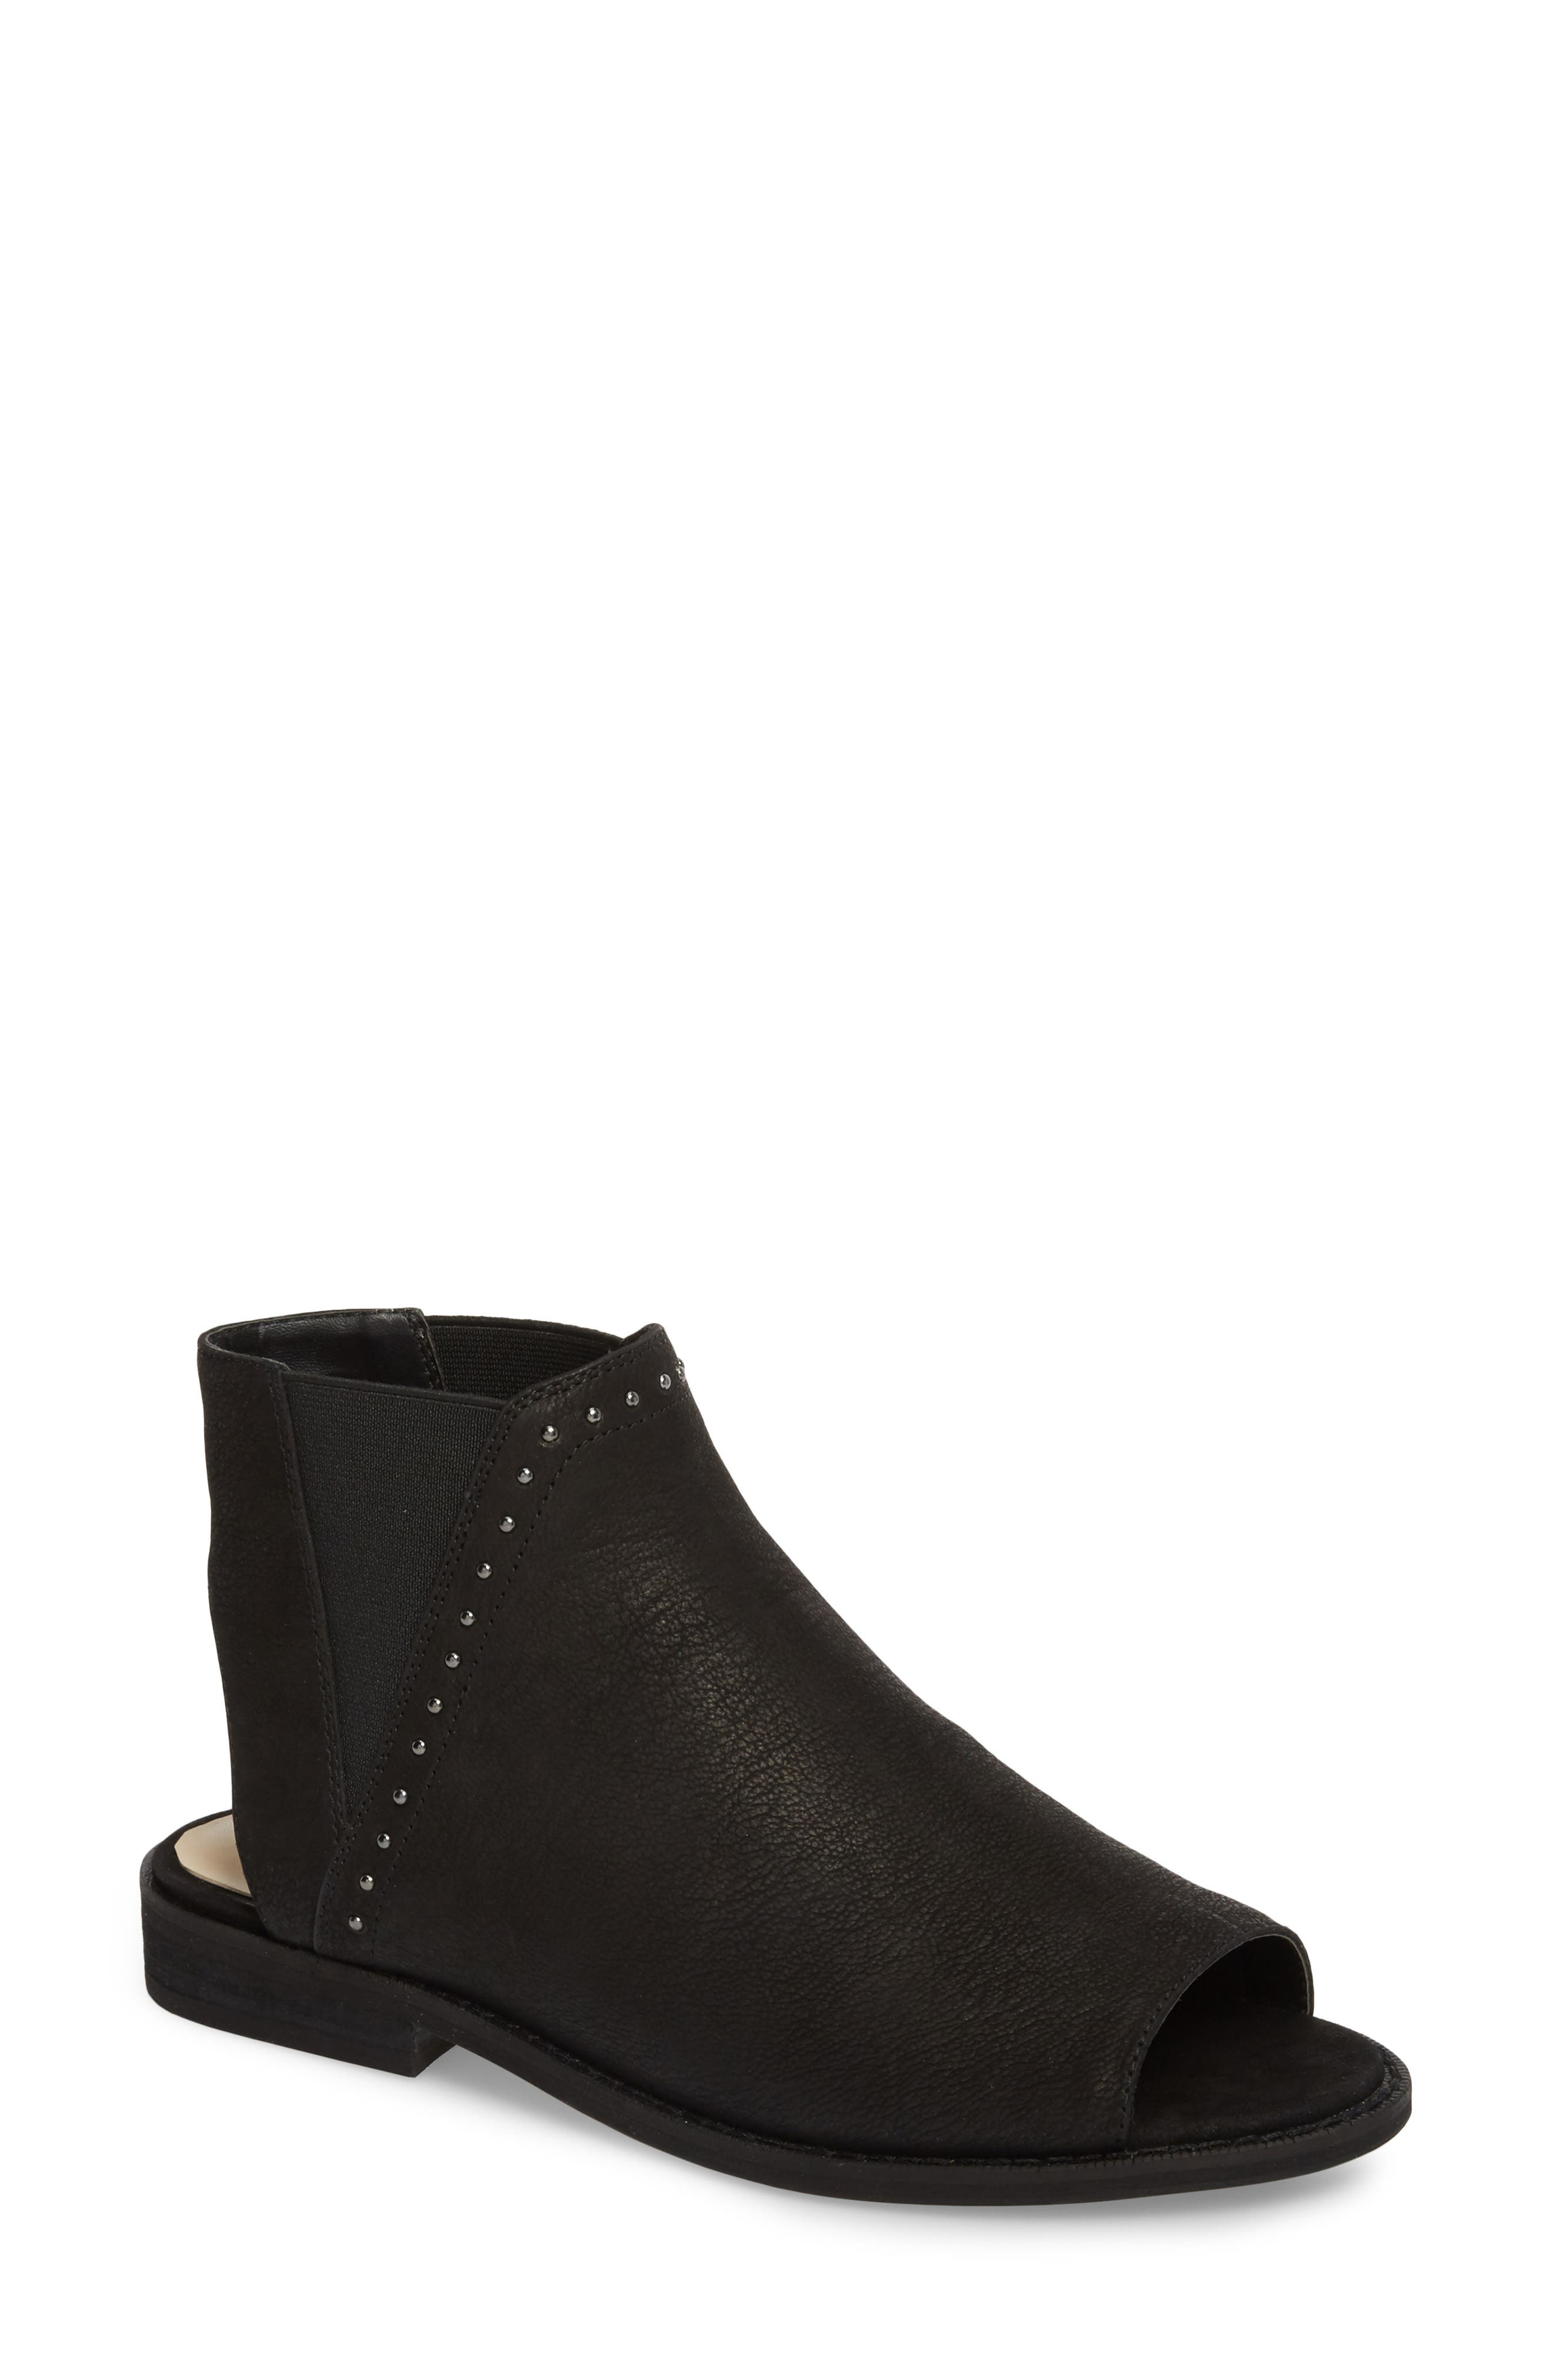 SOLE SOCIETY Birty Bootie, Main, color, BLACK